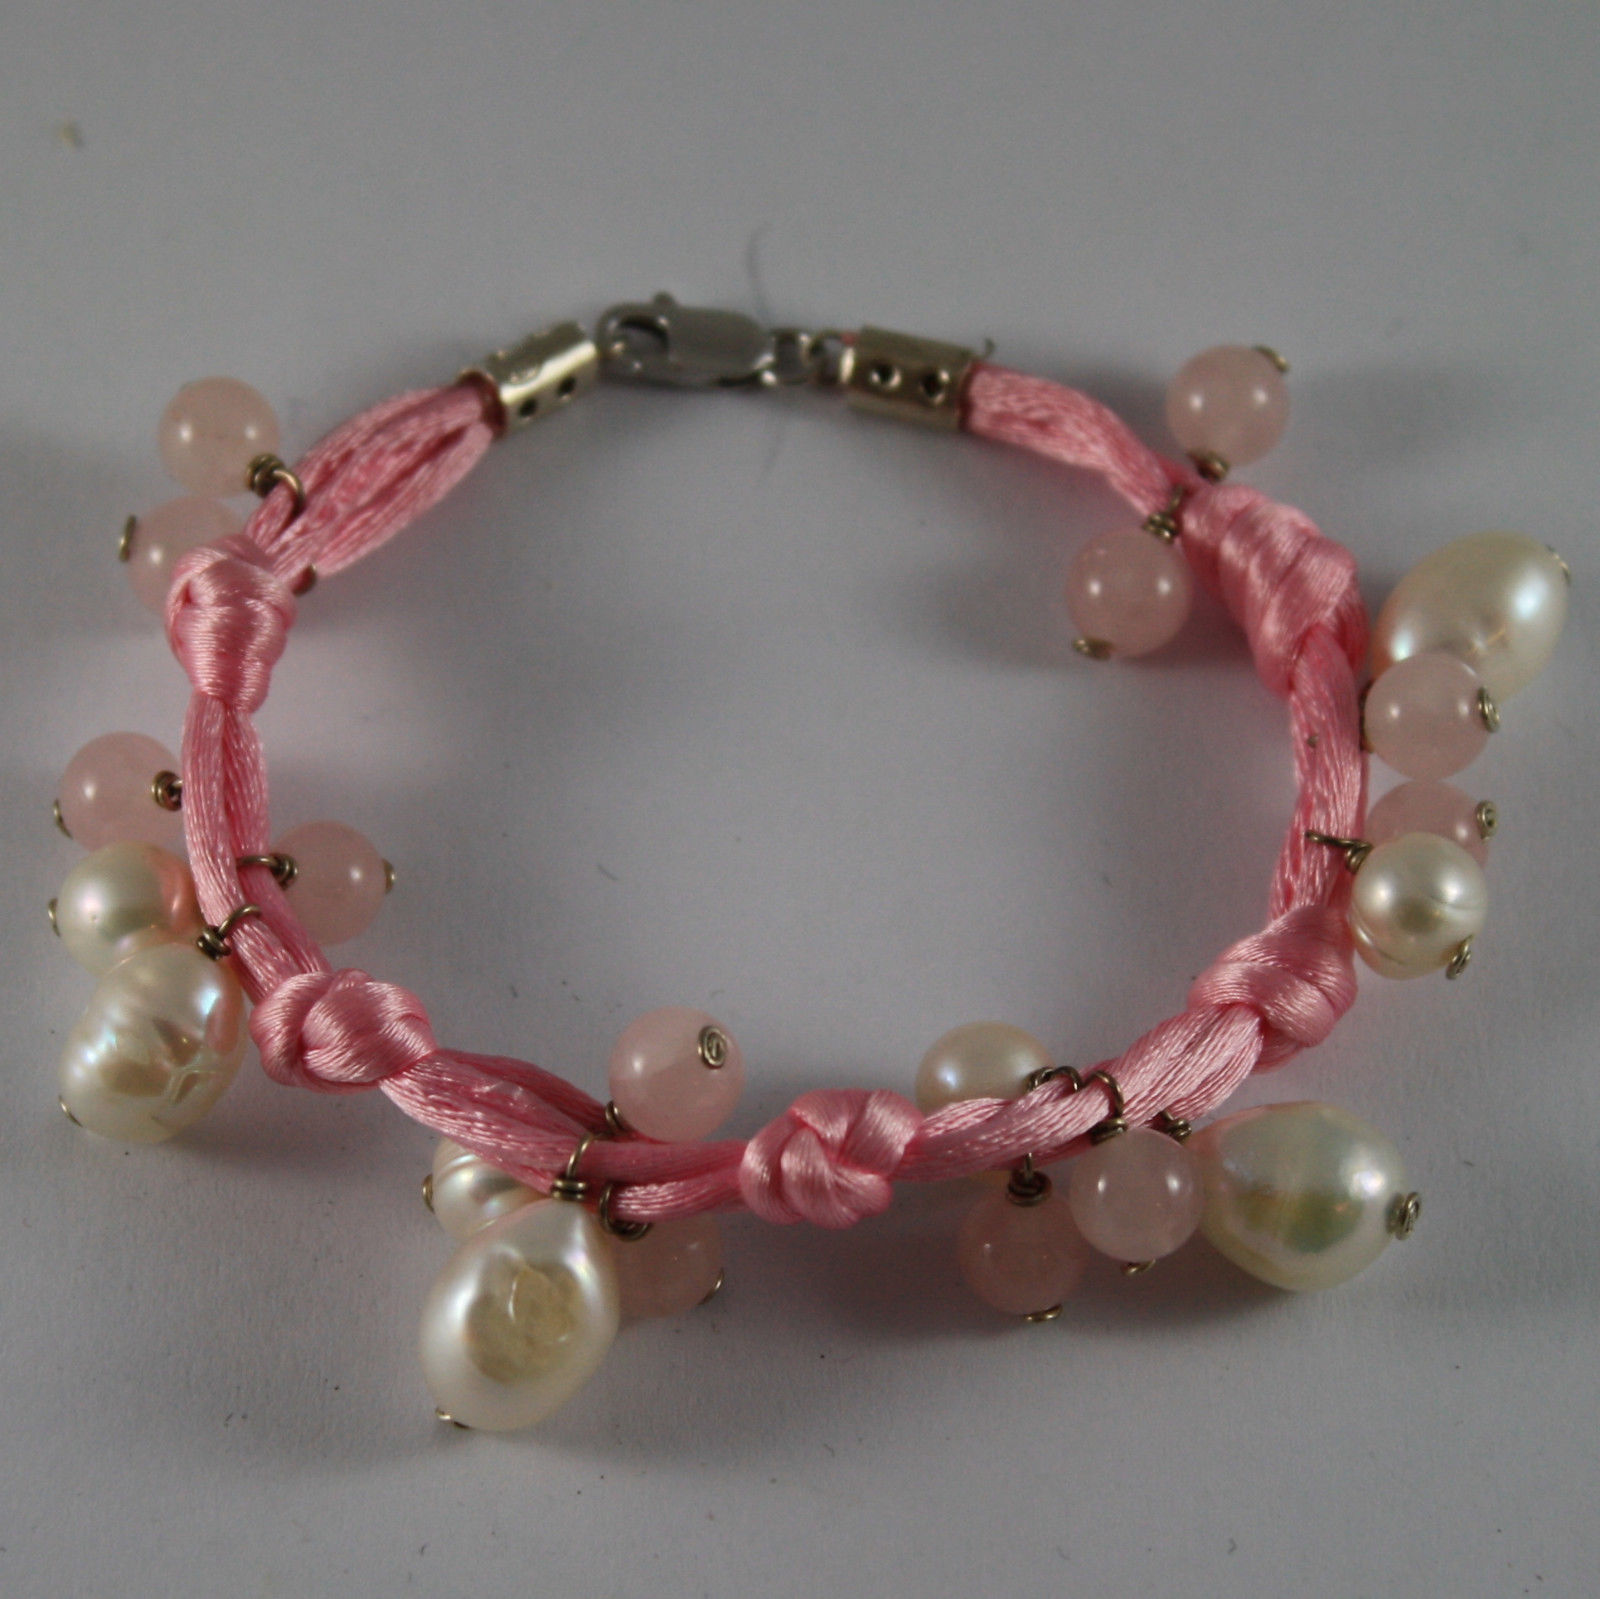 .925 SILVER RHODIUM BRACELET WITH PINK CORD, WHITE PEARLS AND PINK QUARTZ